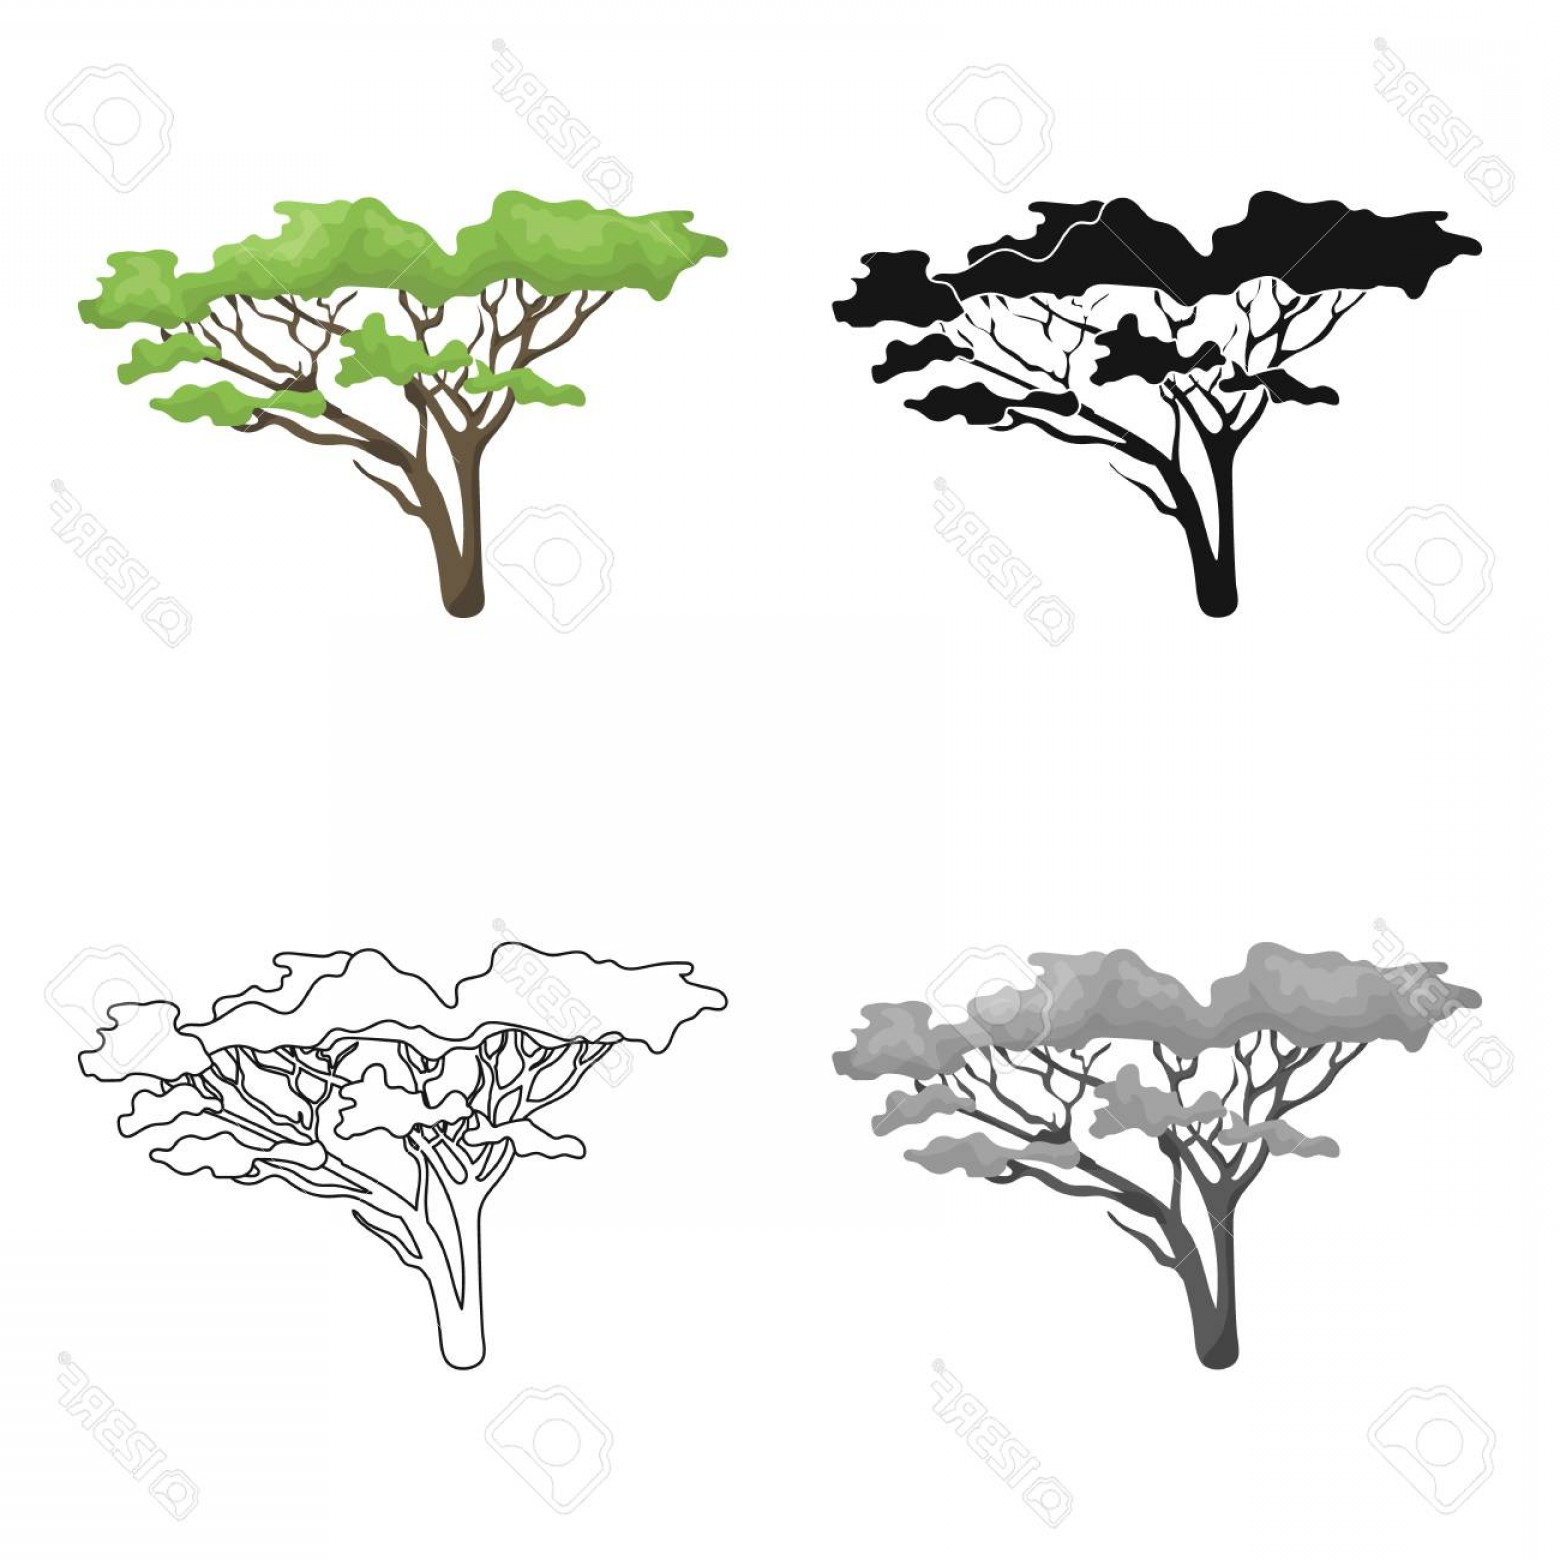 Contoon Free Black Vector Tree: Photostock Vector Tree In The Savannah African Safari Single Icon In Cartoon Style Vector Symbol Stock Illustration We